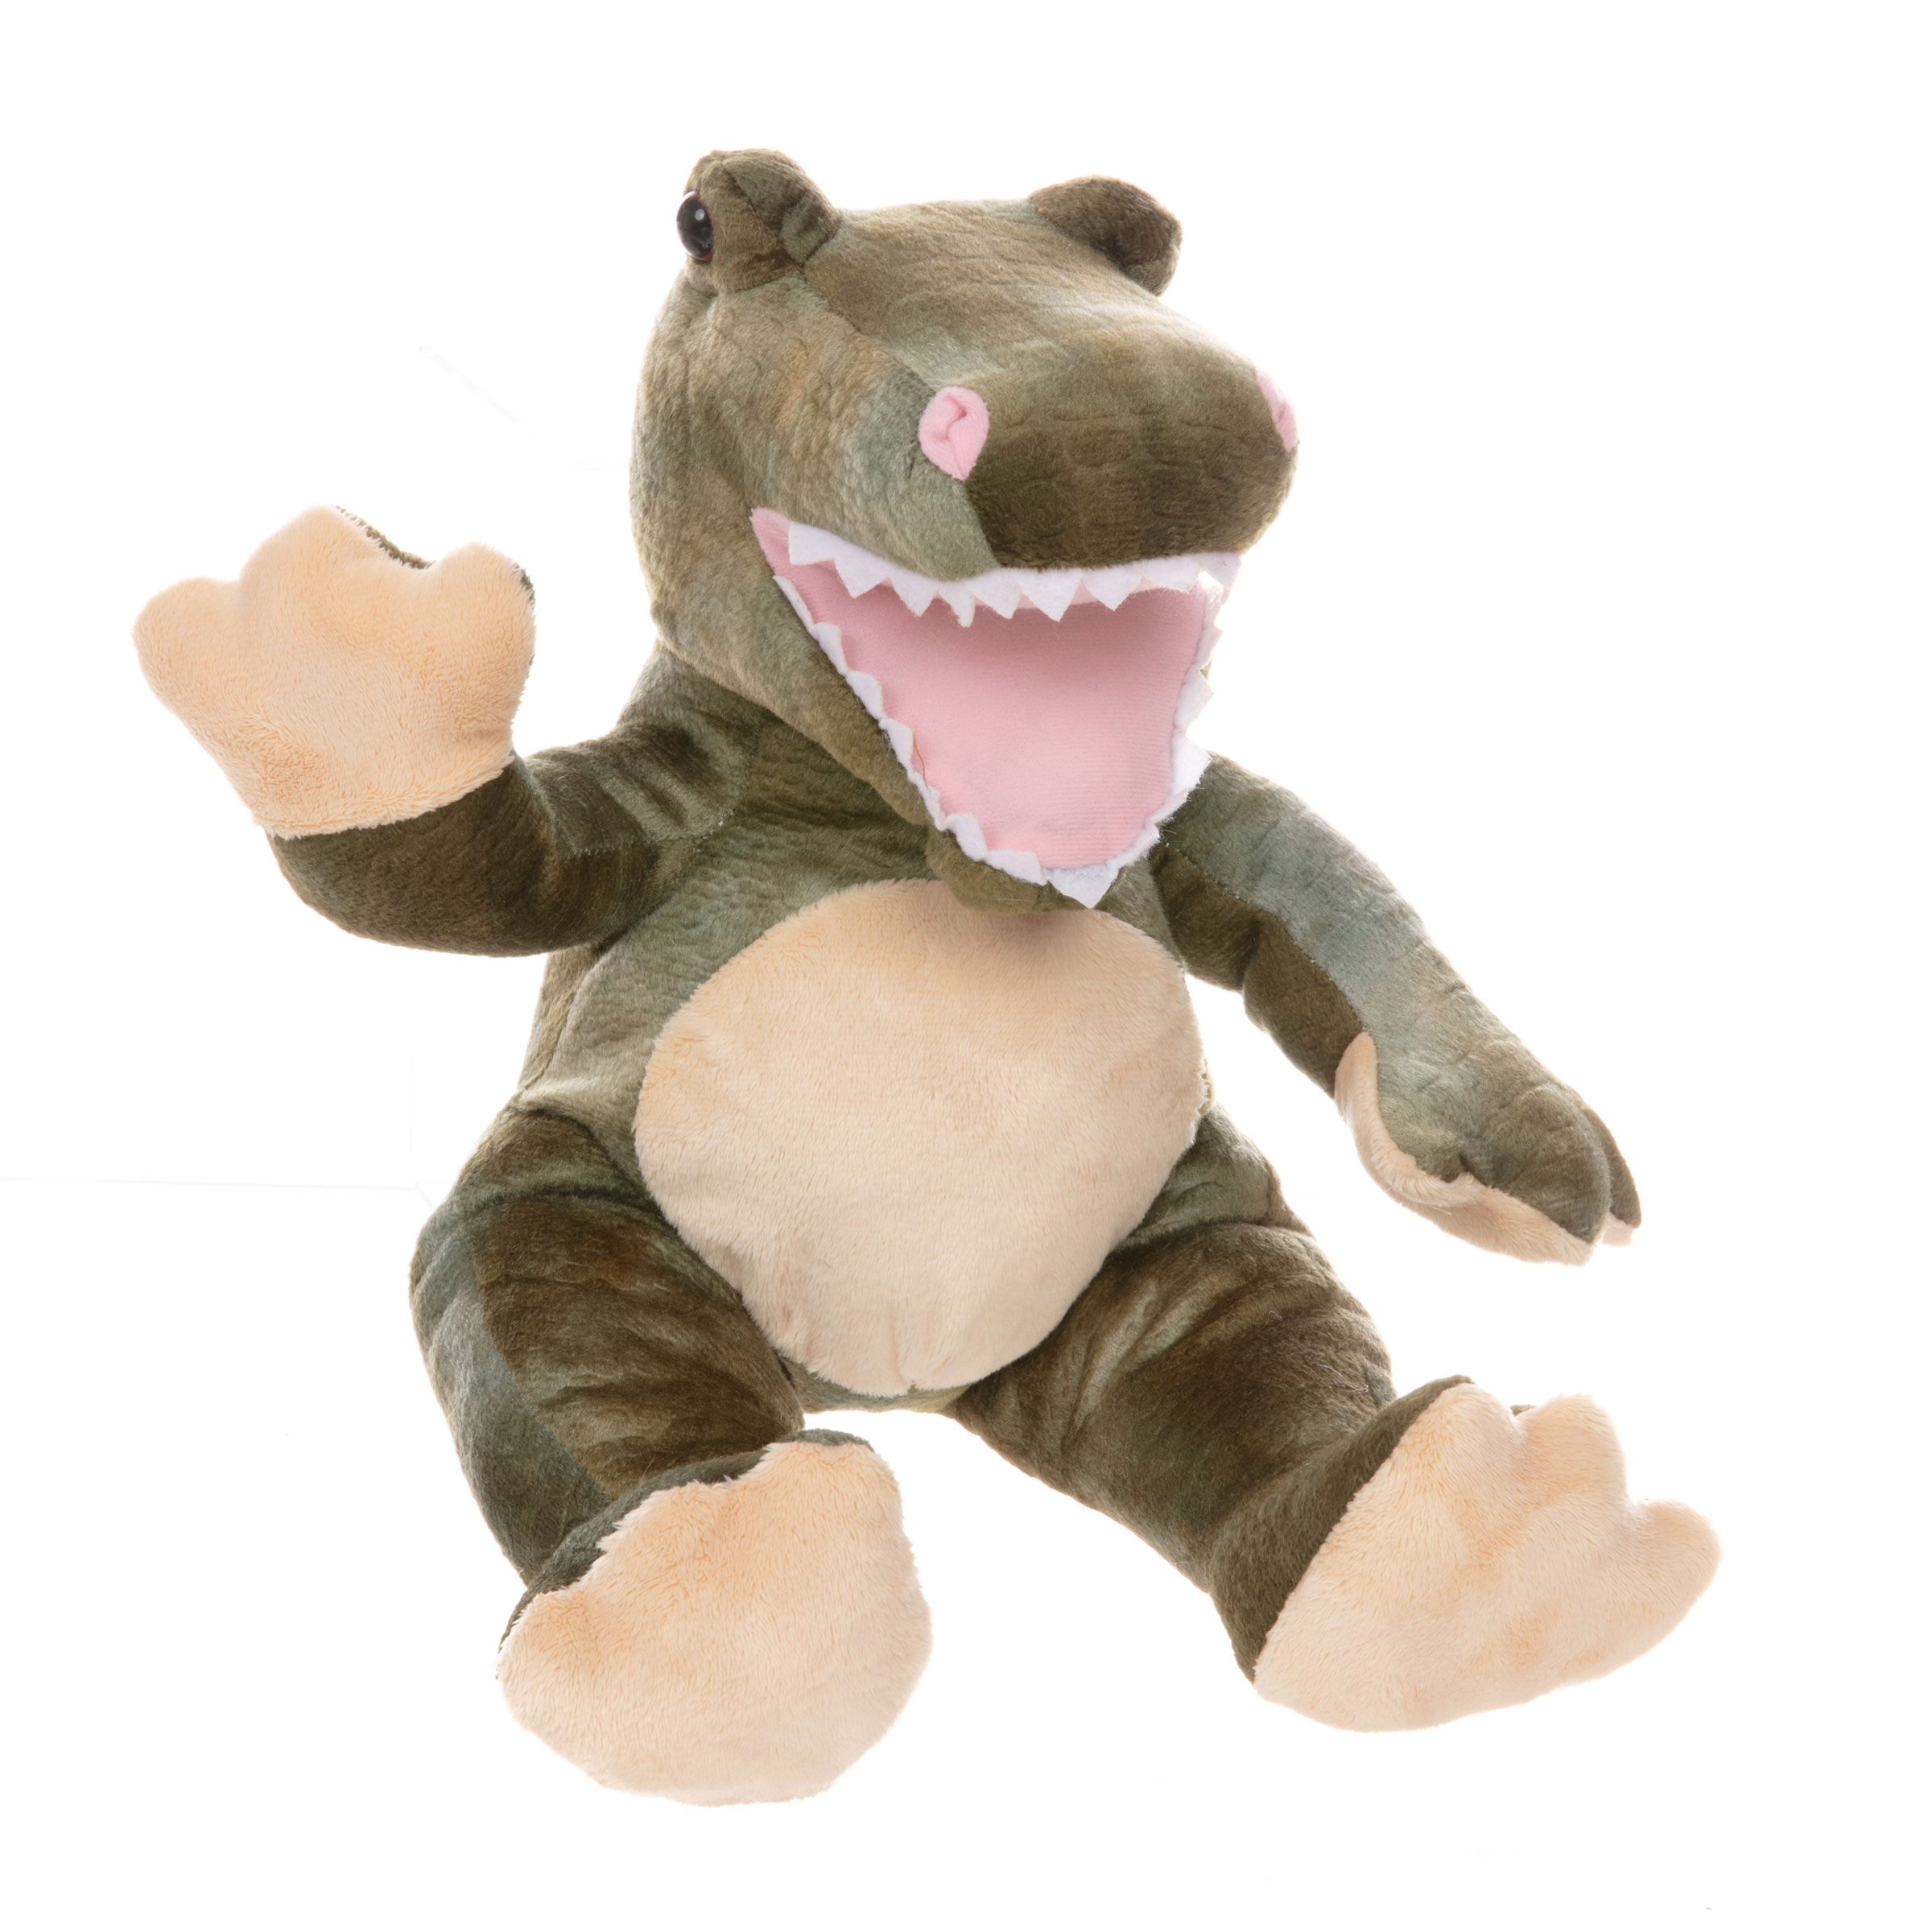 Rex the Dinosaur Teddy Bear